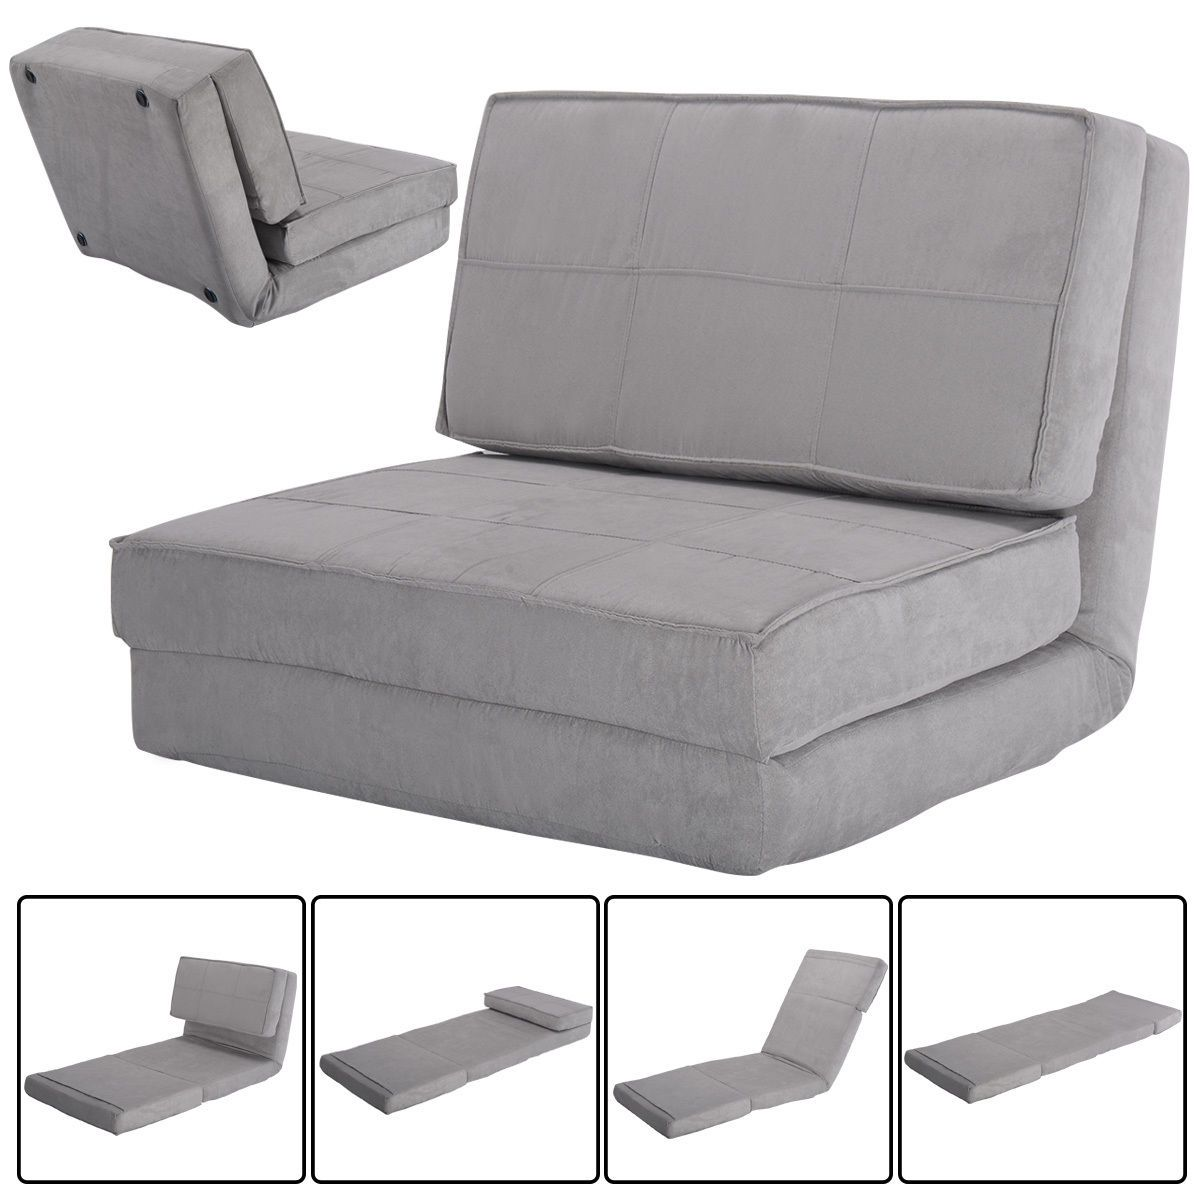 Bettsofa Jazz Convertible Lounger Folding Sofa Sleeper Bed In 2019 Furniture